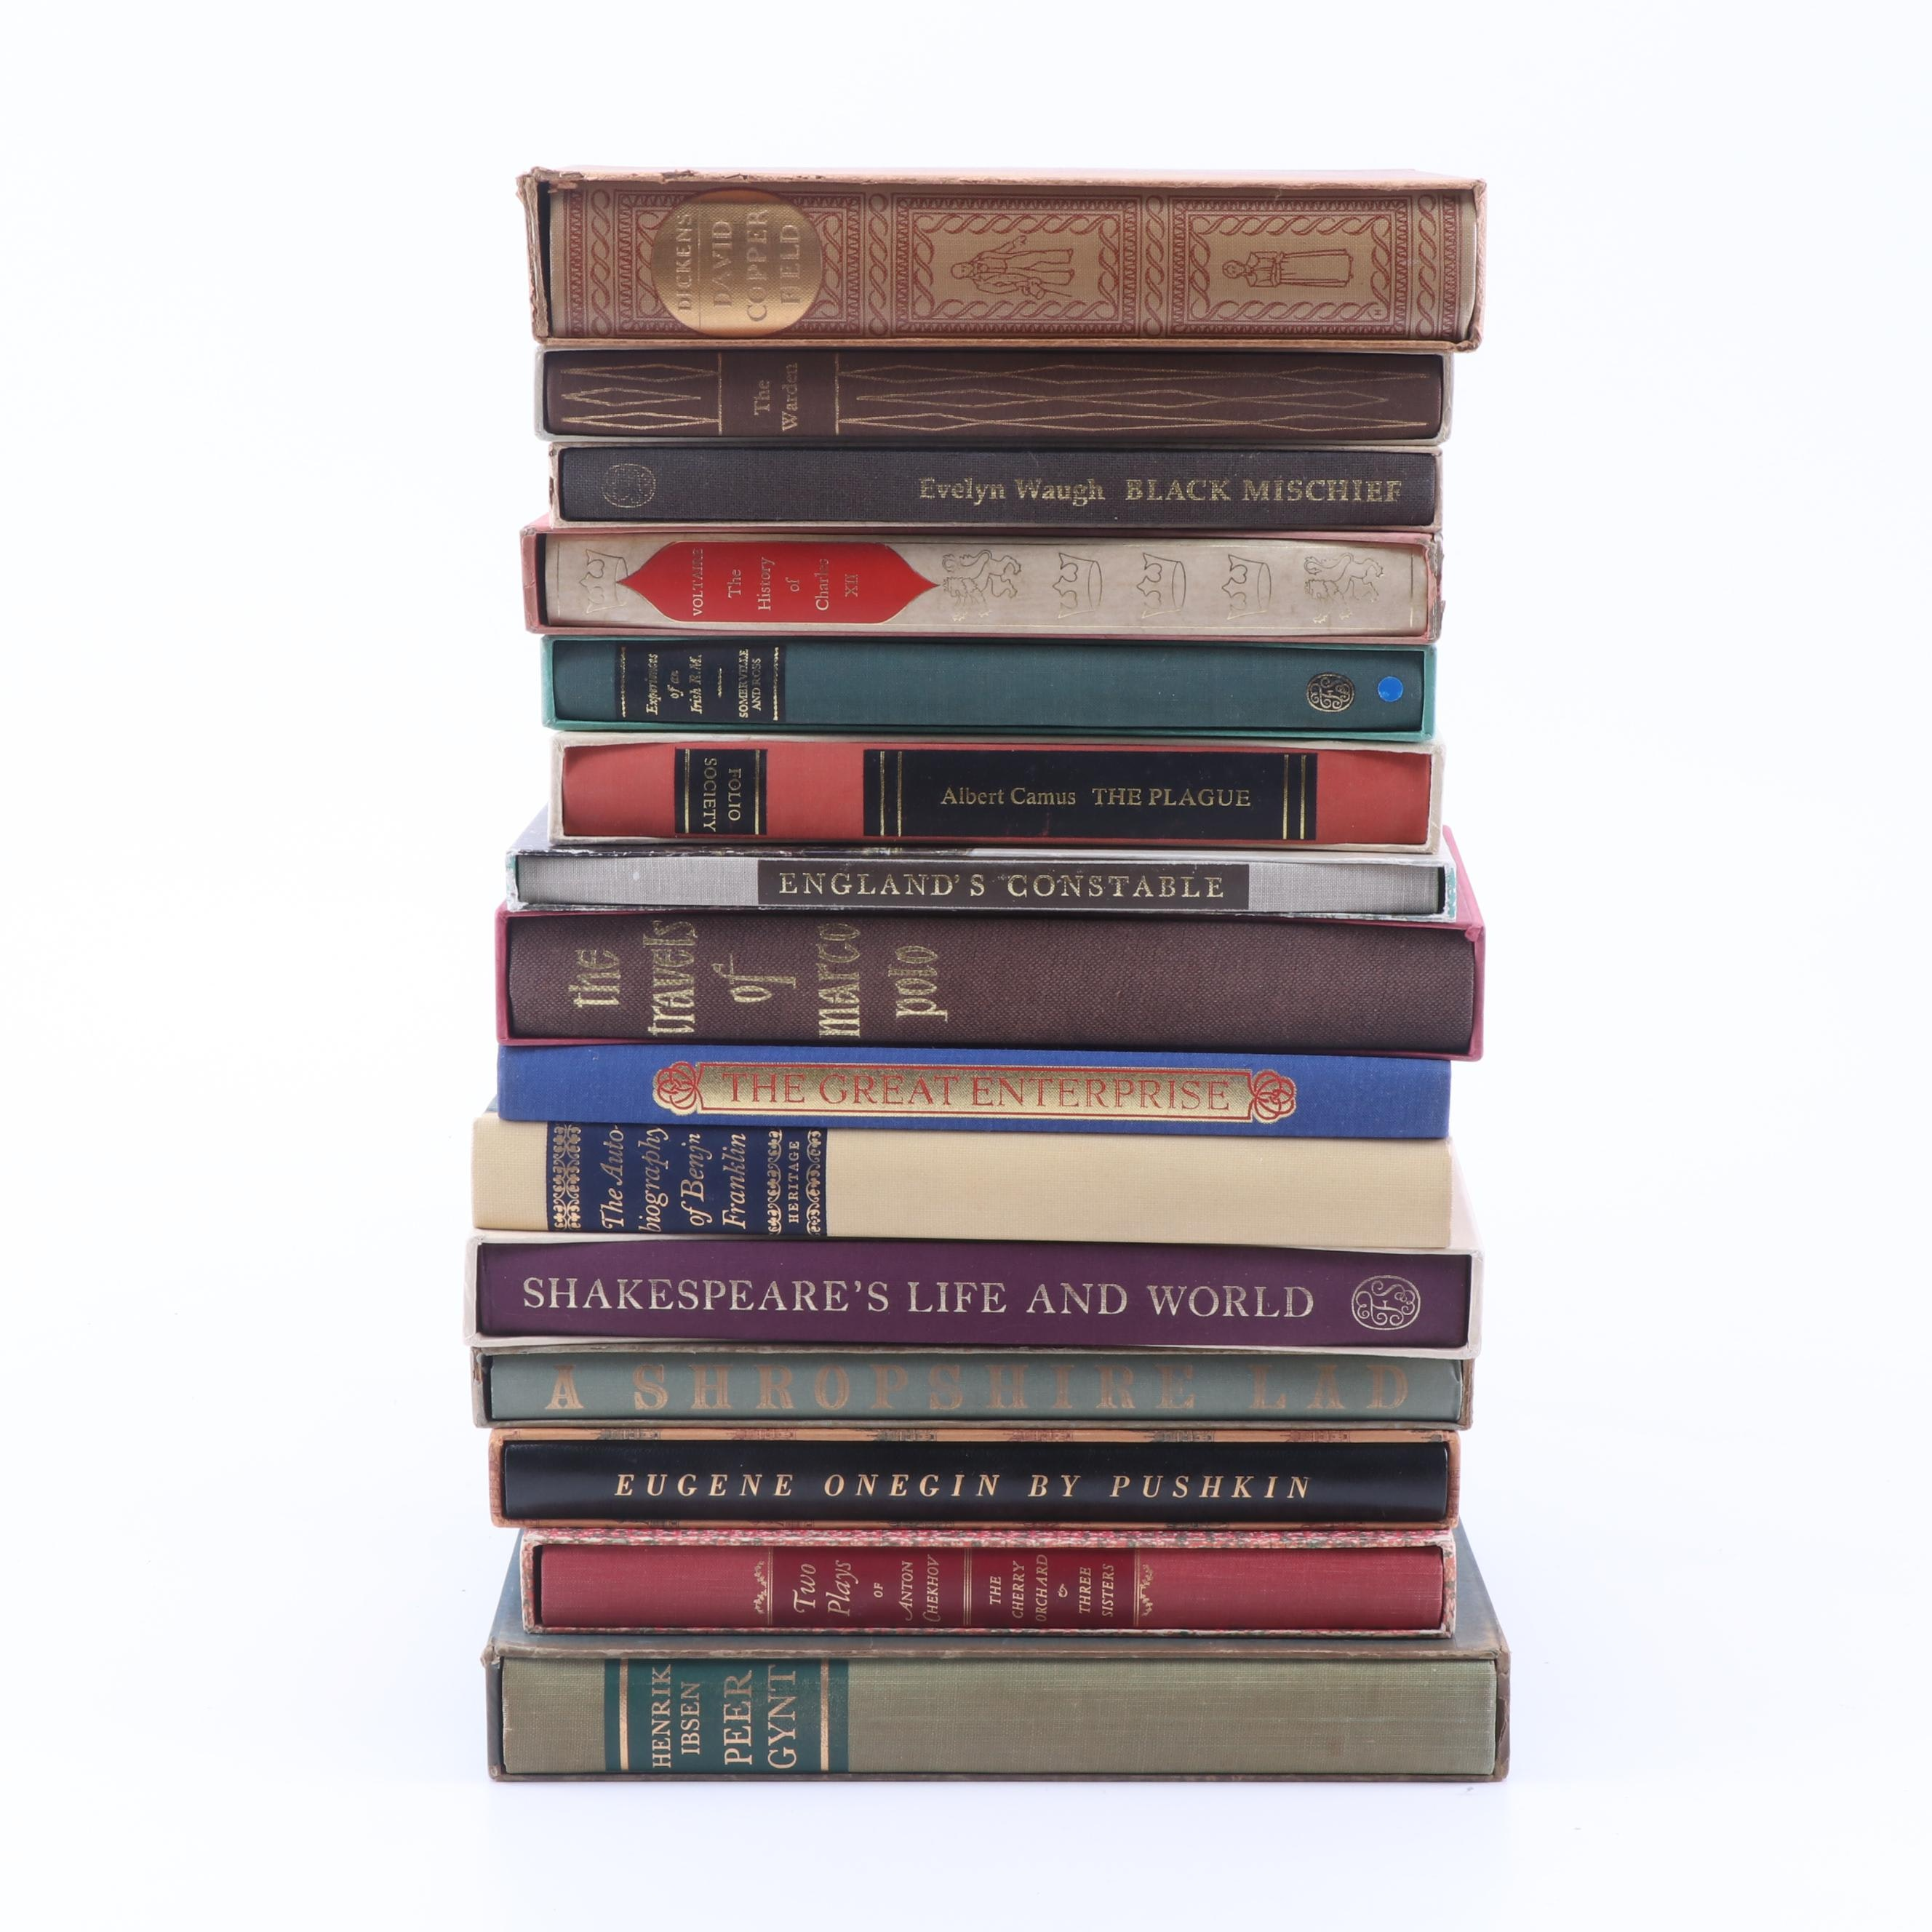 The Heritage Press and The Folio Society Editions of Classics and Plays